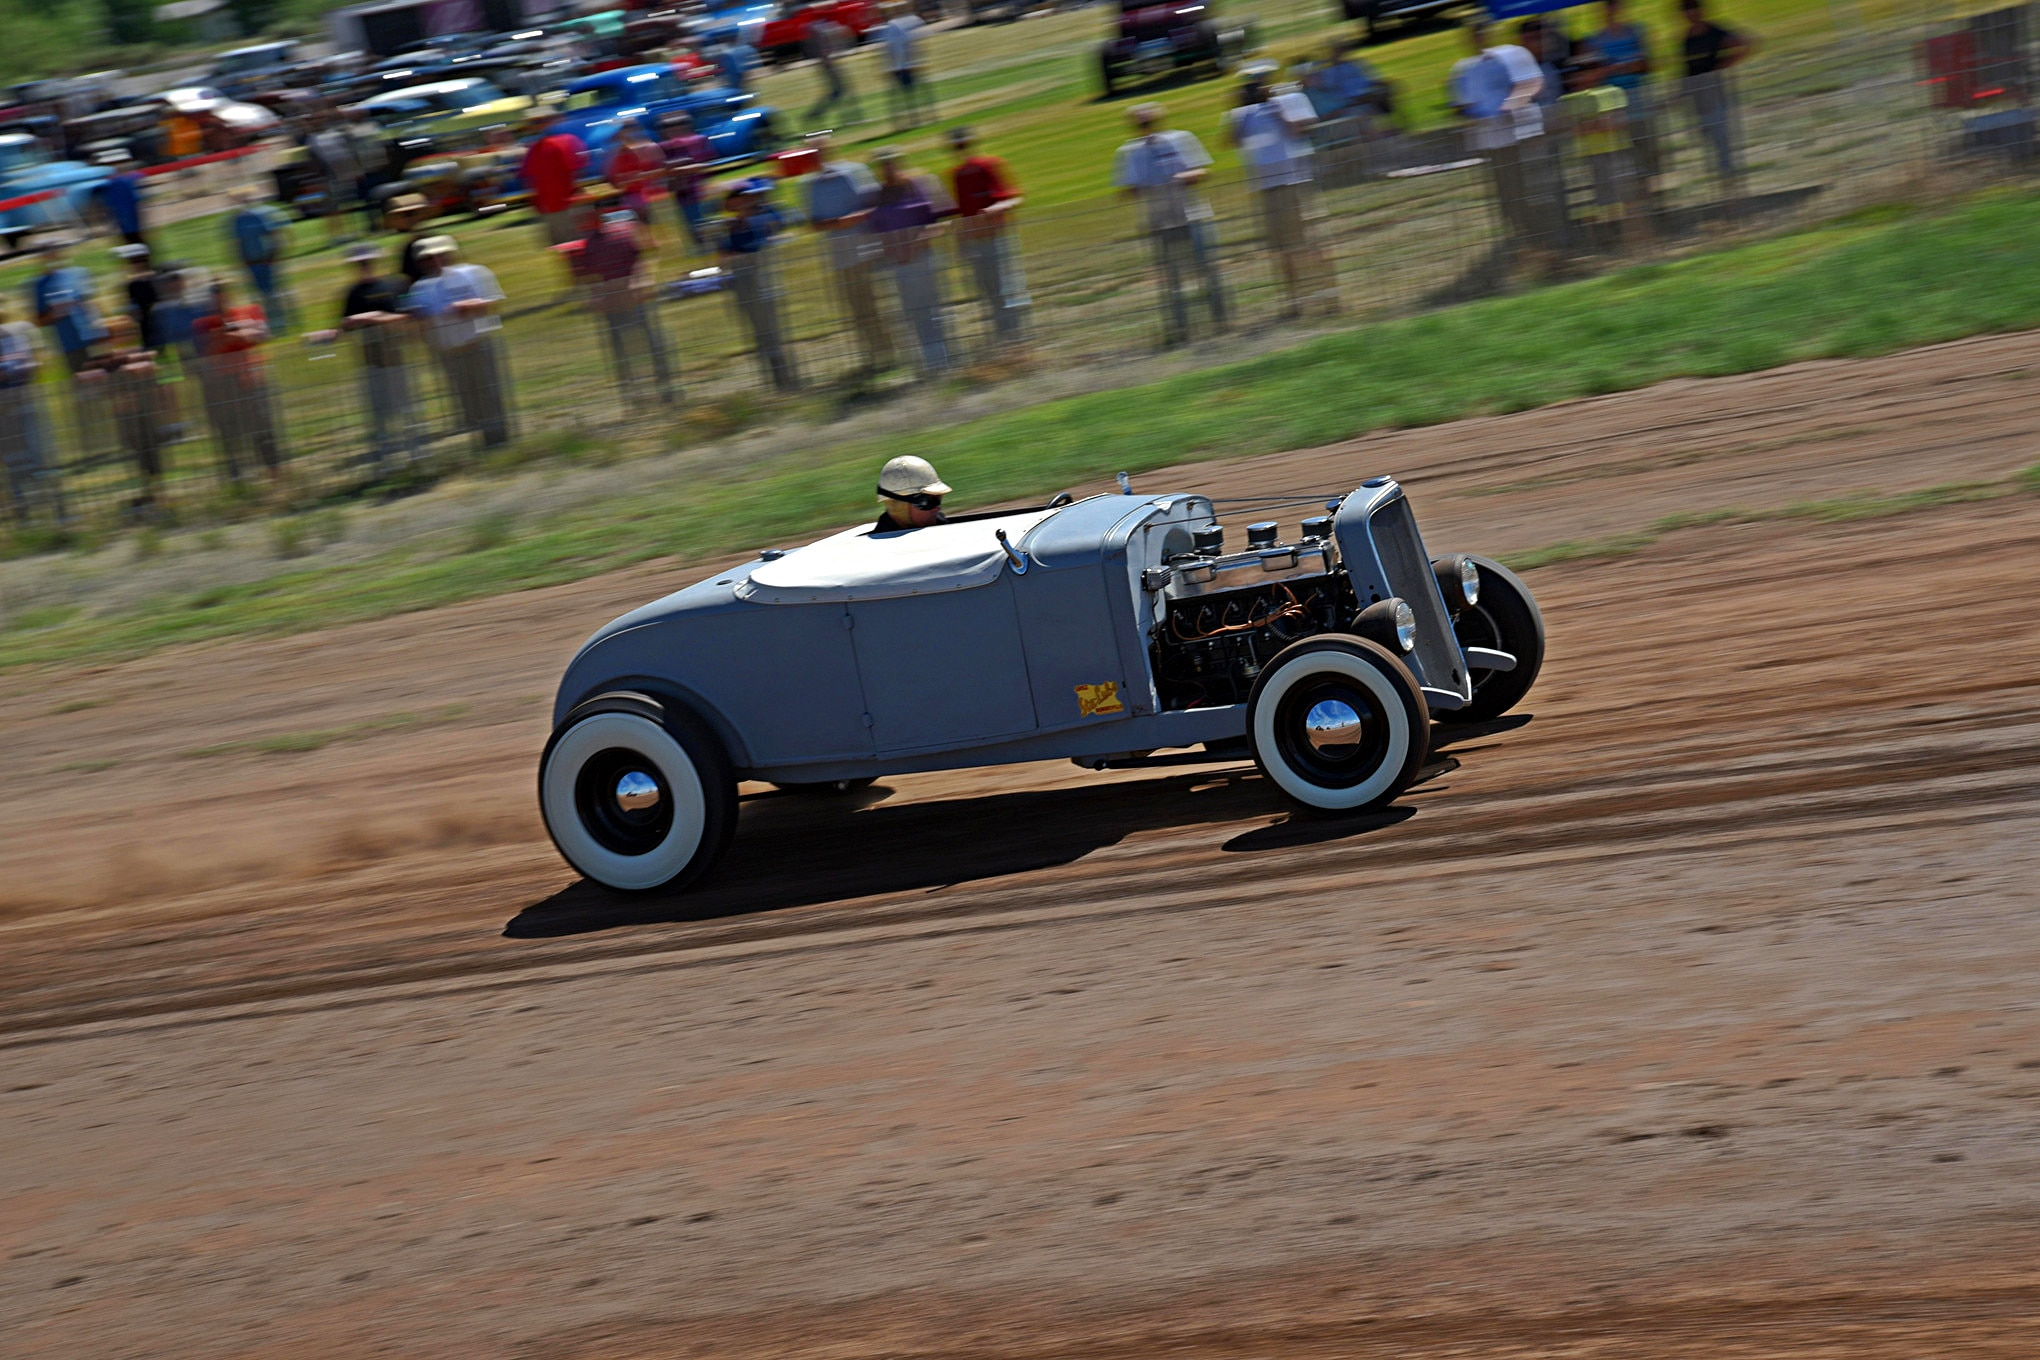 """Six Shooter: Dave Overholt and his trusty '31 Chevy roadster seem to appear at every event west of the Mississippi. It's always a strong runner, and its owner constantly pushes her to the limit whenever he's on a track—paved or dirt. The Bow Tie started down the hot rod path in the '60s when the doors received a suicide fit, but then the project stalled. Dave got a tip from local legend Gary Vahling about the car and then scored the needy roadster. The engine is an early 292 straight-six. It's a stock block, but the compression has been boosted to 10:1 by a highly modified 194ci head. A custom Clay Smith cam gets the valves jumping. Three Rochesters are up on top, connected to an original Offenhauser 3x1 intake. A vintage Mallory Double Life distributor gets the spark out, and those pipes are early Clifford issue. A '57 Ford rear with 4.56 gears gets the power to the back wheels, a 4-inch drop axle gives him a nice rake up front, and stopping power is via Ford hydraulic brakes with Buick drums. The body is basically the same as the day he bought it. Sparse interior with a few period Stewart-Warner gauges makes this hot rod look the part. His son's chalk writing of """"Hot Rod"""" is still on the dash, and Beth Kearney of Lil' Dame pinstriping did the work on the decklid in remembrance of Dave's brother."""